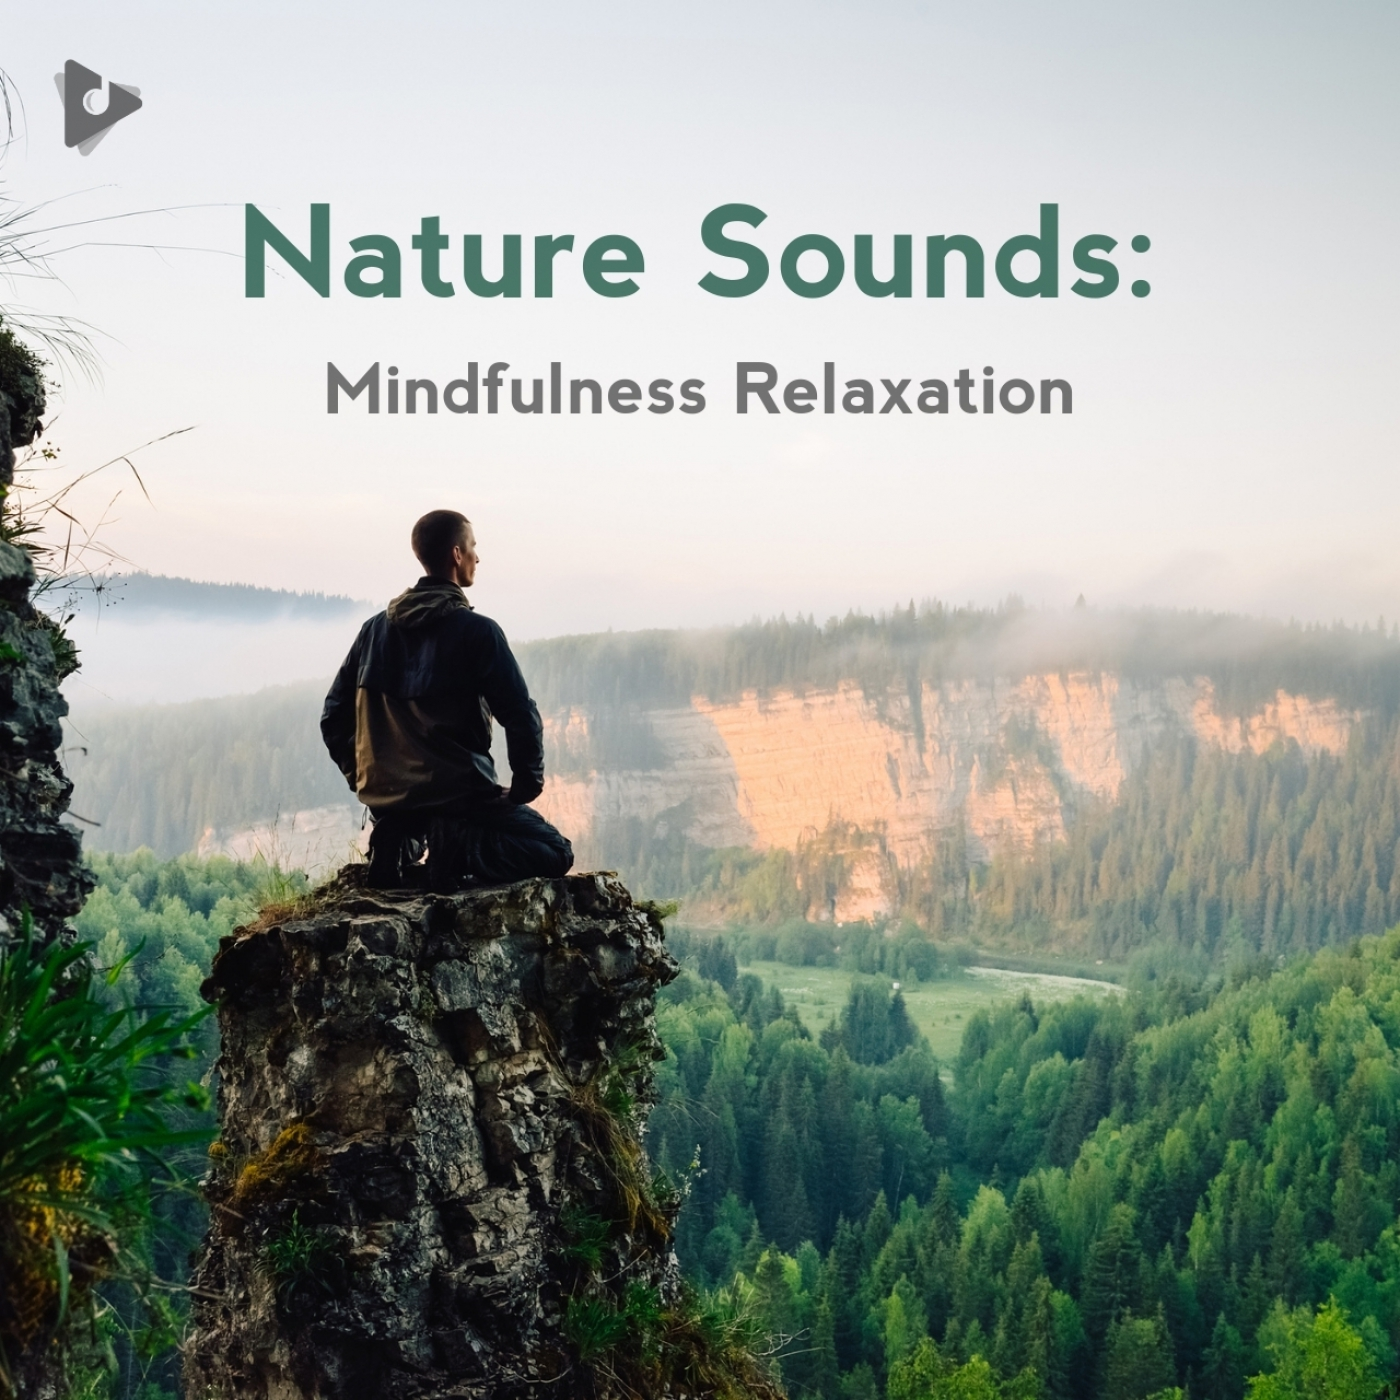 Nature Sounds: Mindfulness Relaxation